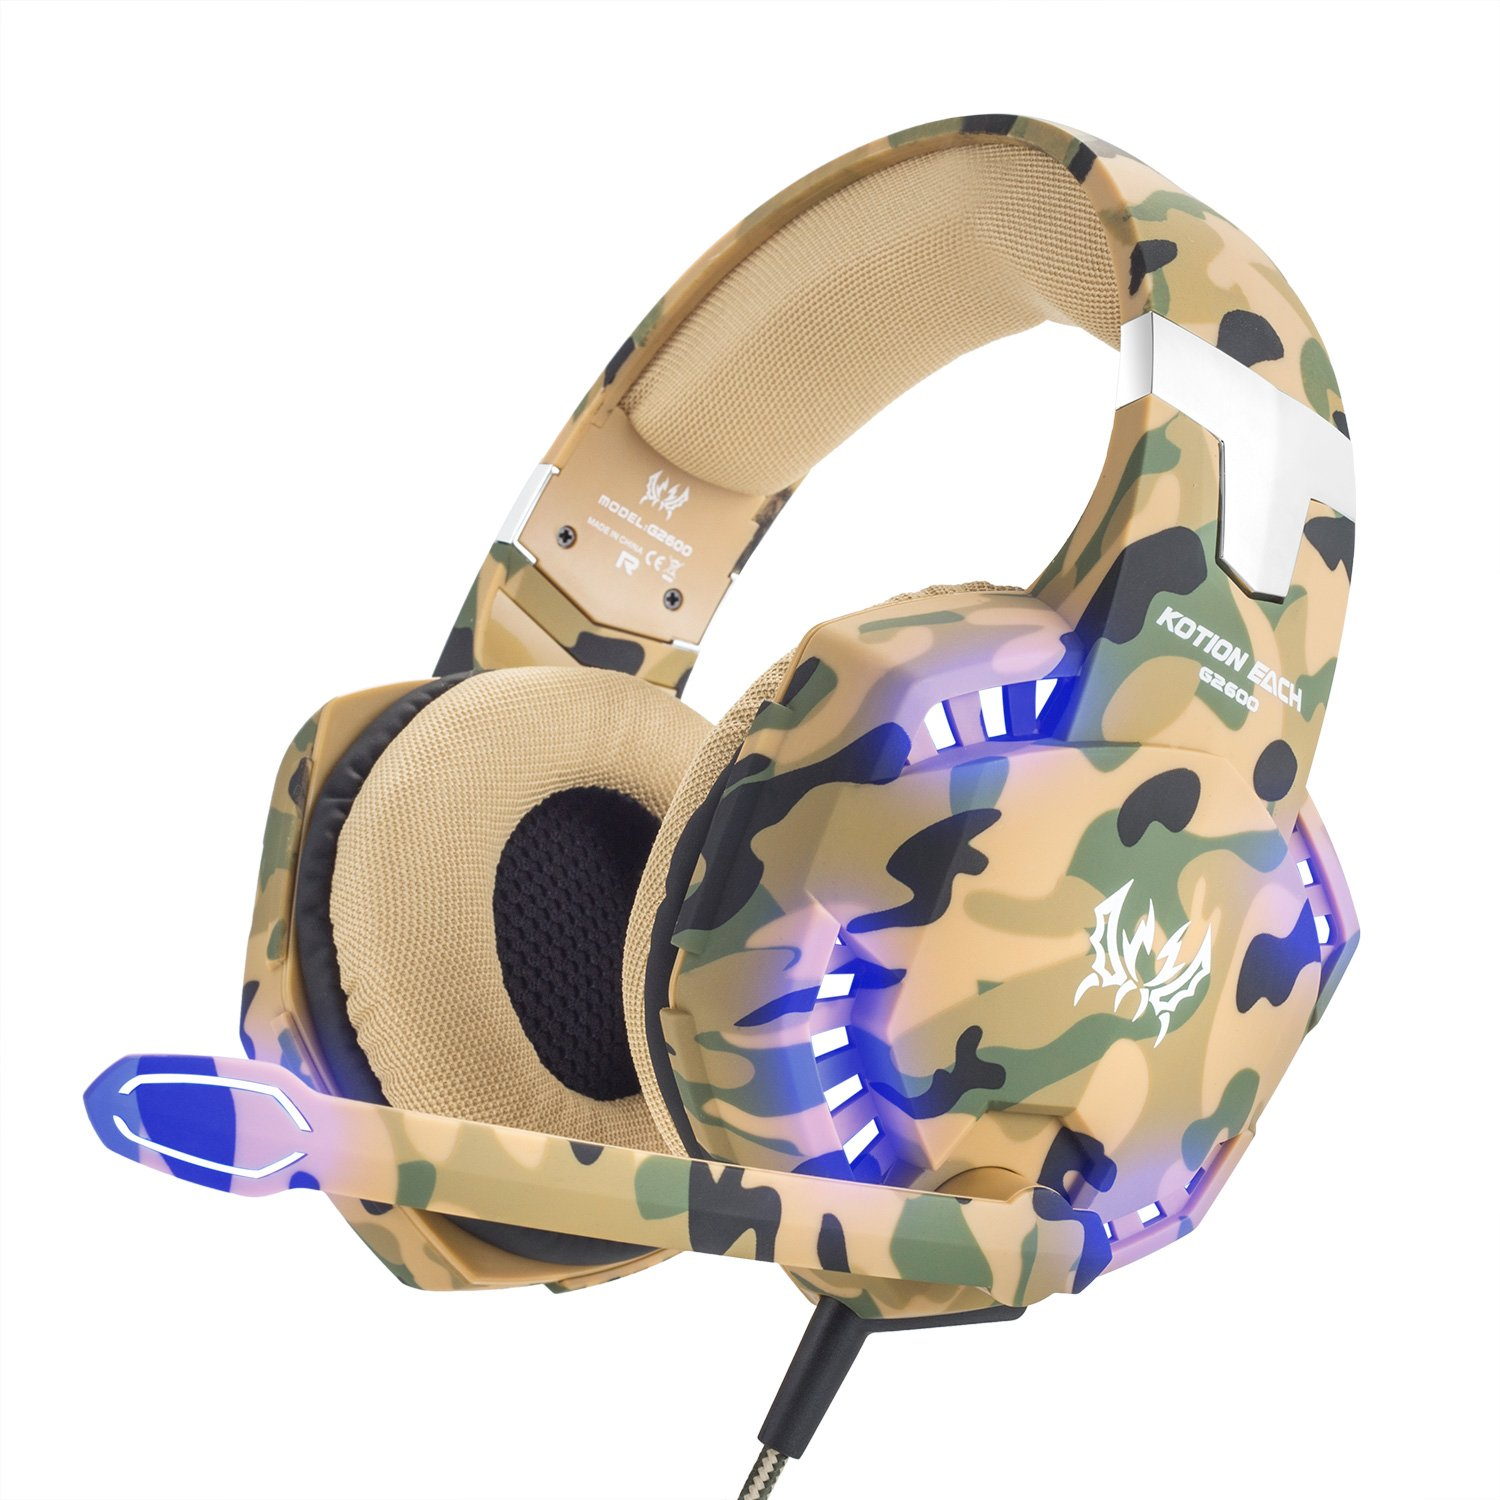 VersionTech Stereo Gaming Headset for PS4 Xbox One, Professional 3.5mm Over Ear Headphones with Mic and Volume Control, Stunning LED Lights for Laptop PC Mac iPad and Smart Phones -Camouflage by VersionTech